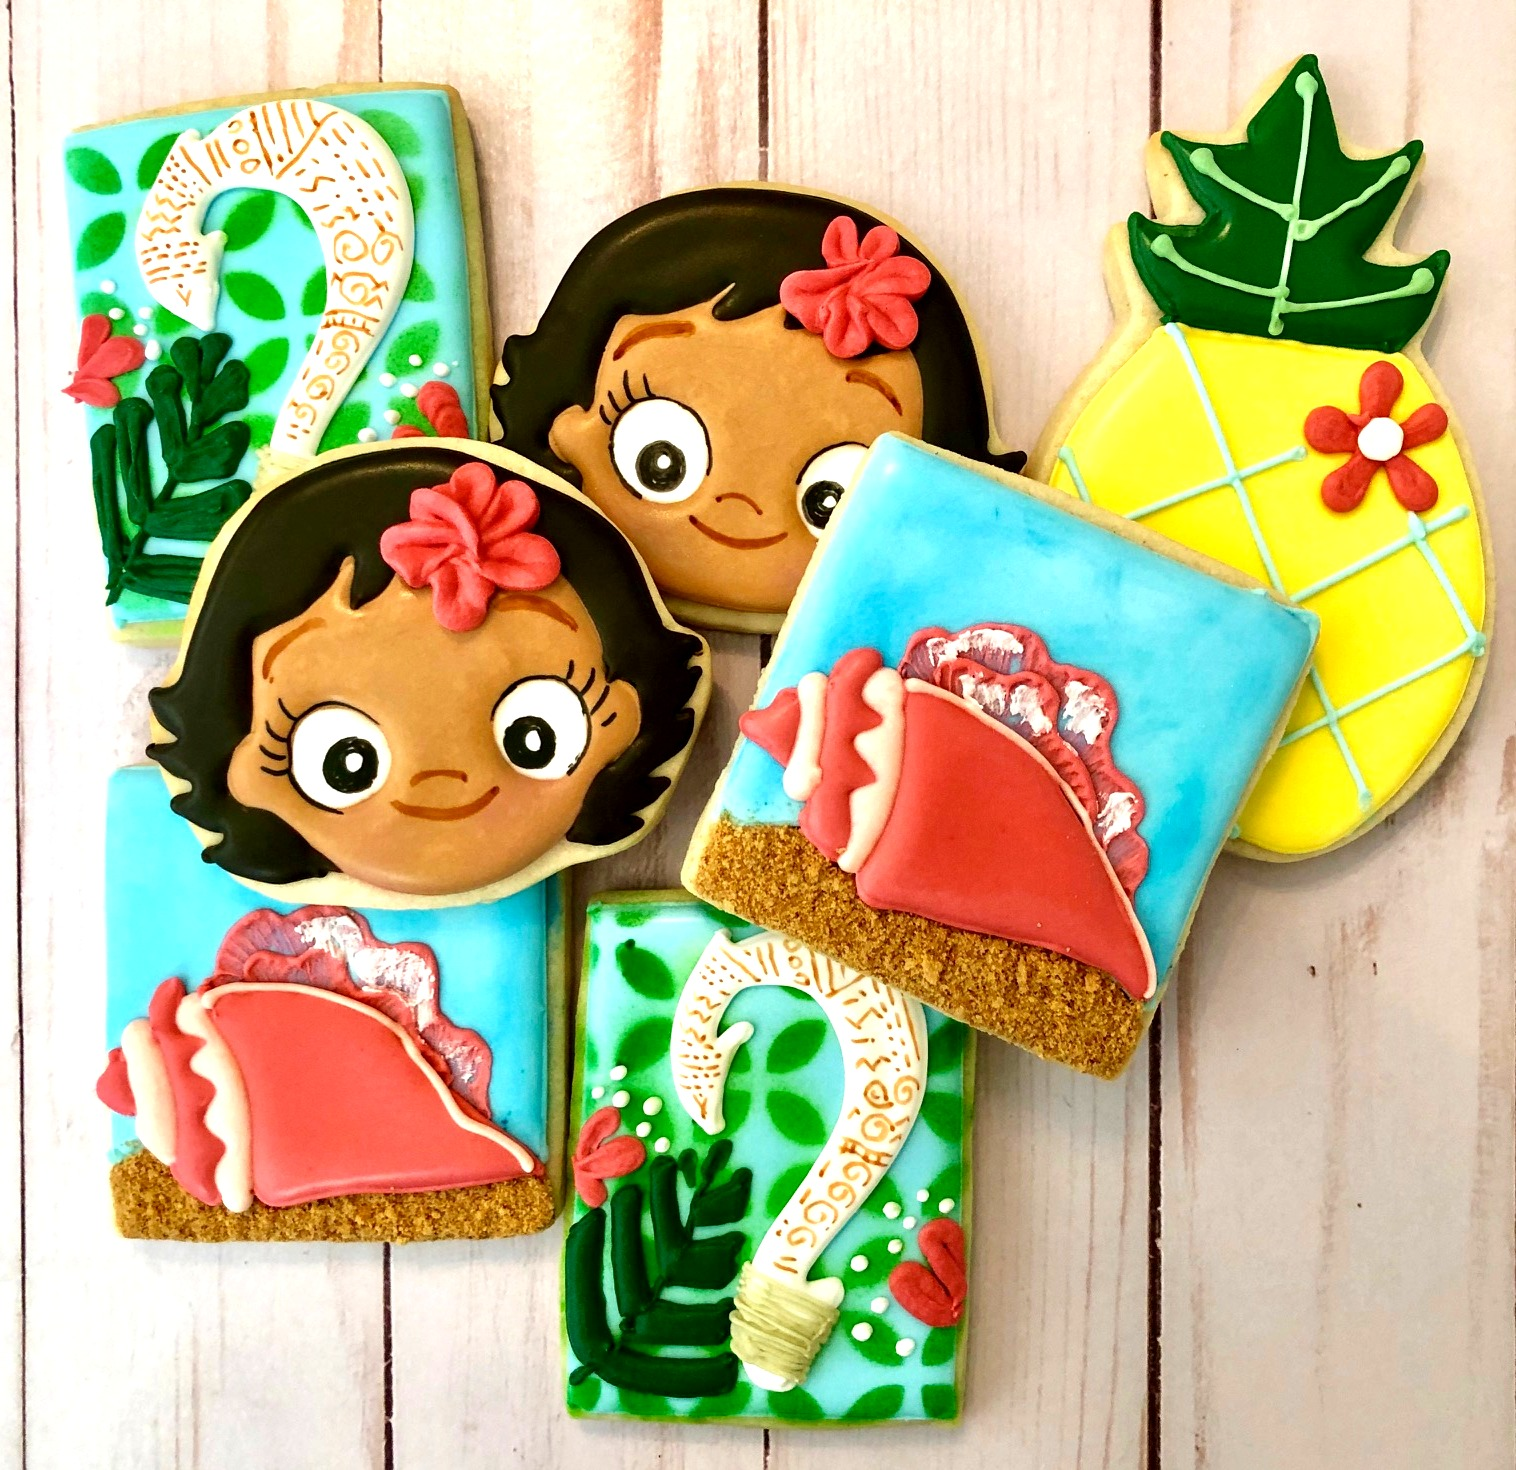 Moana Custom Cookies